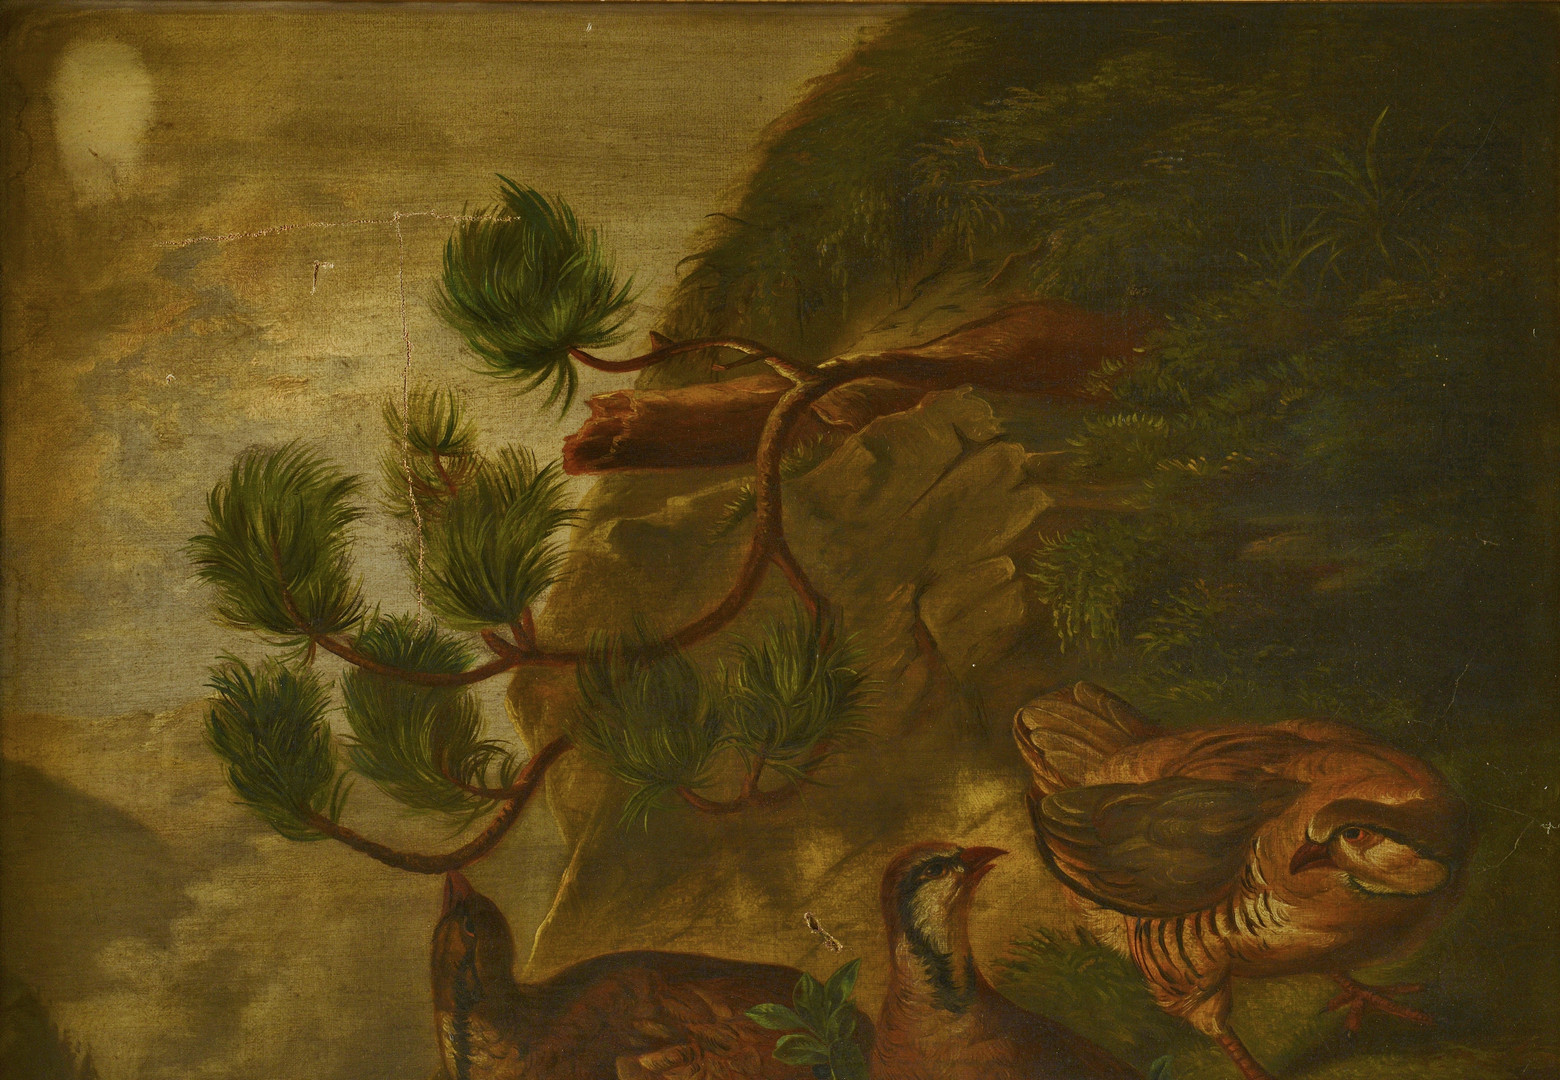 Lot 635: American School, Grouse on Cliff, 19th c.